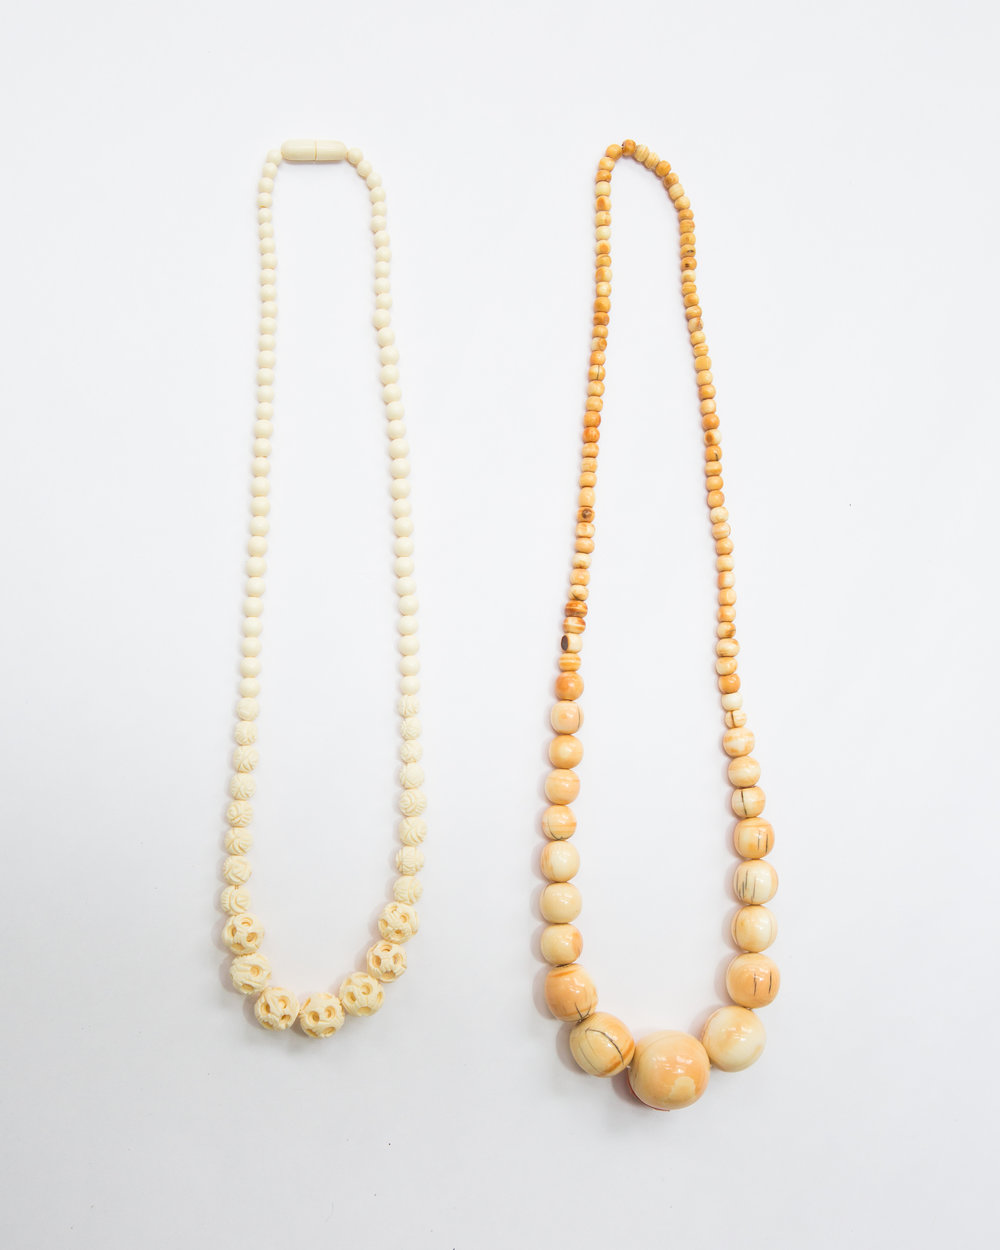 Ivory necklace - WWF-US - Keith Arnold.jpg